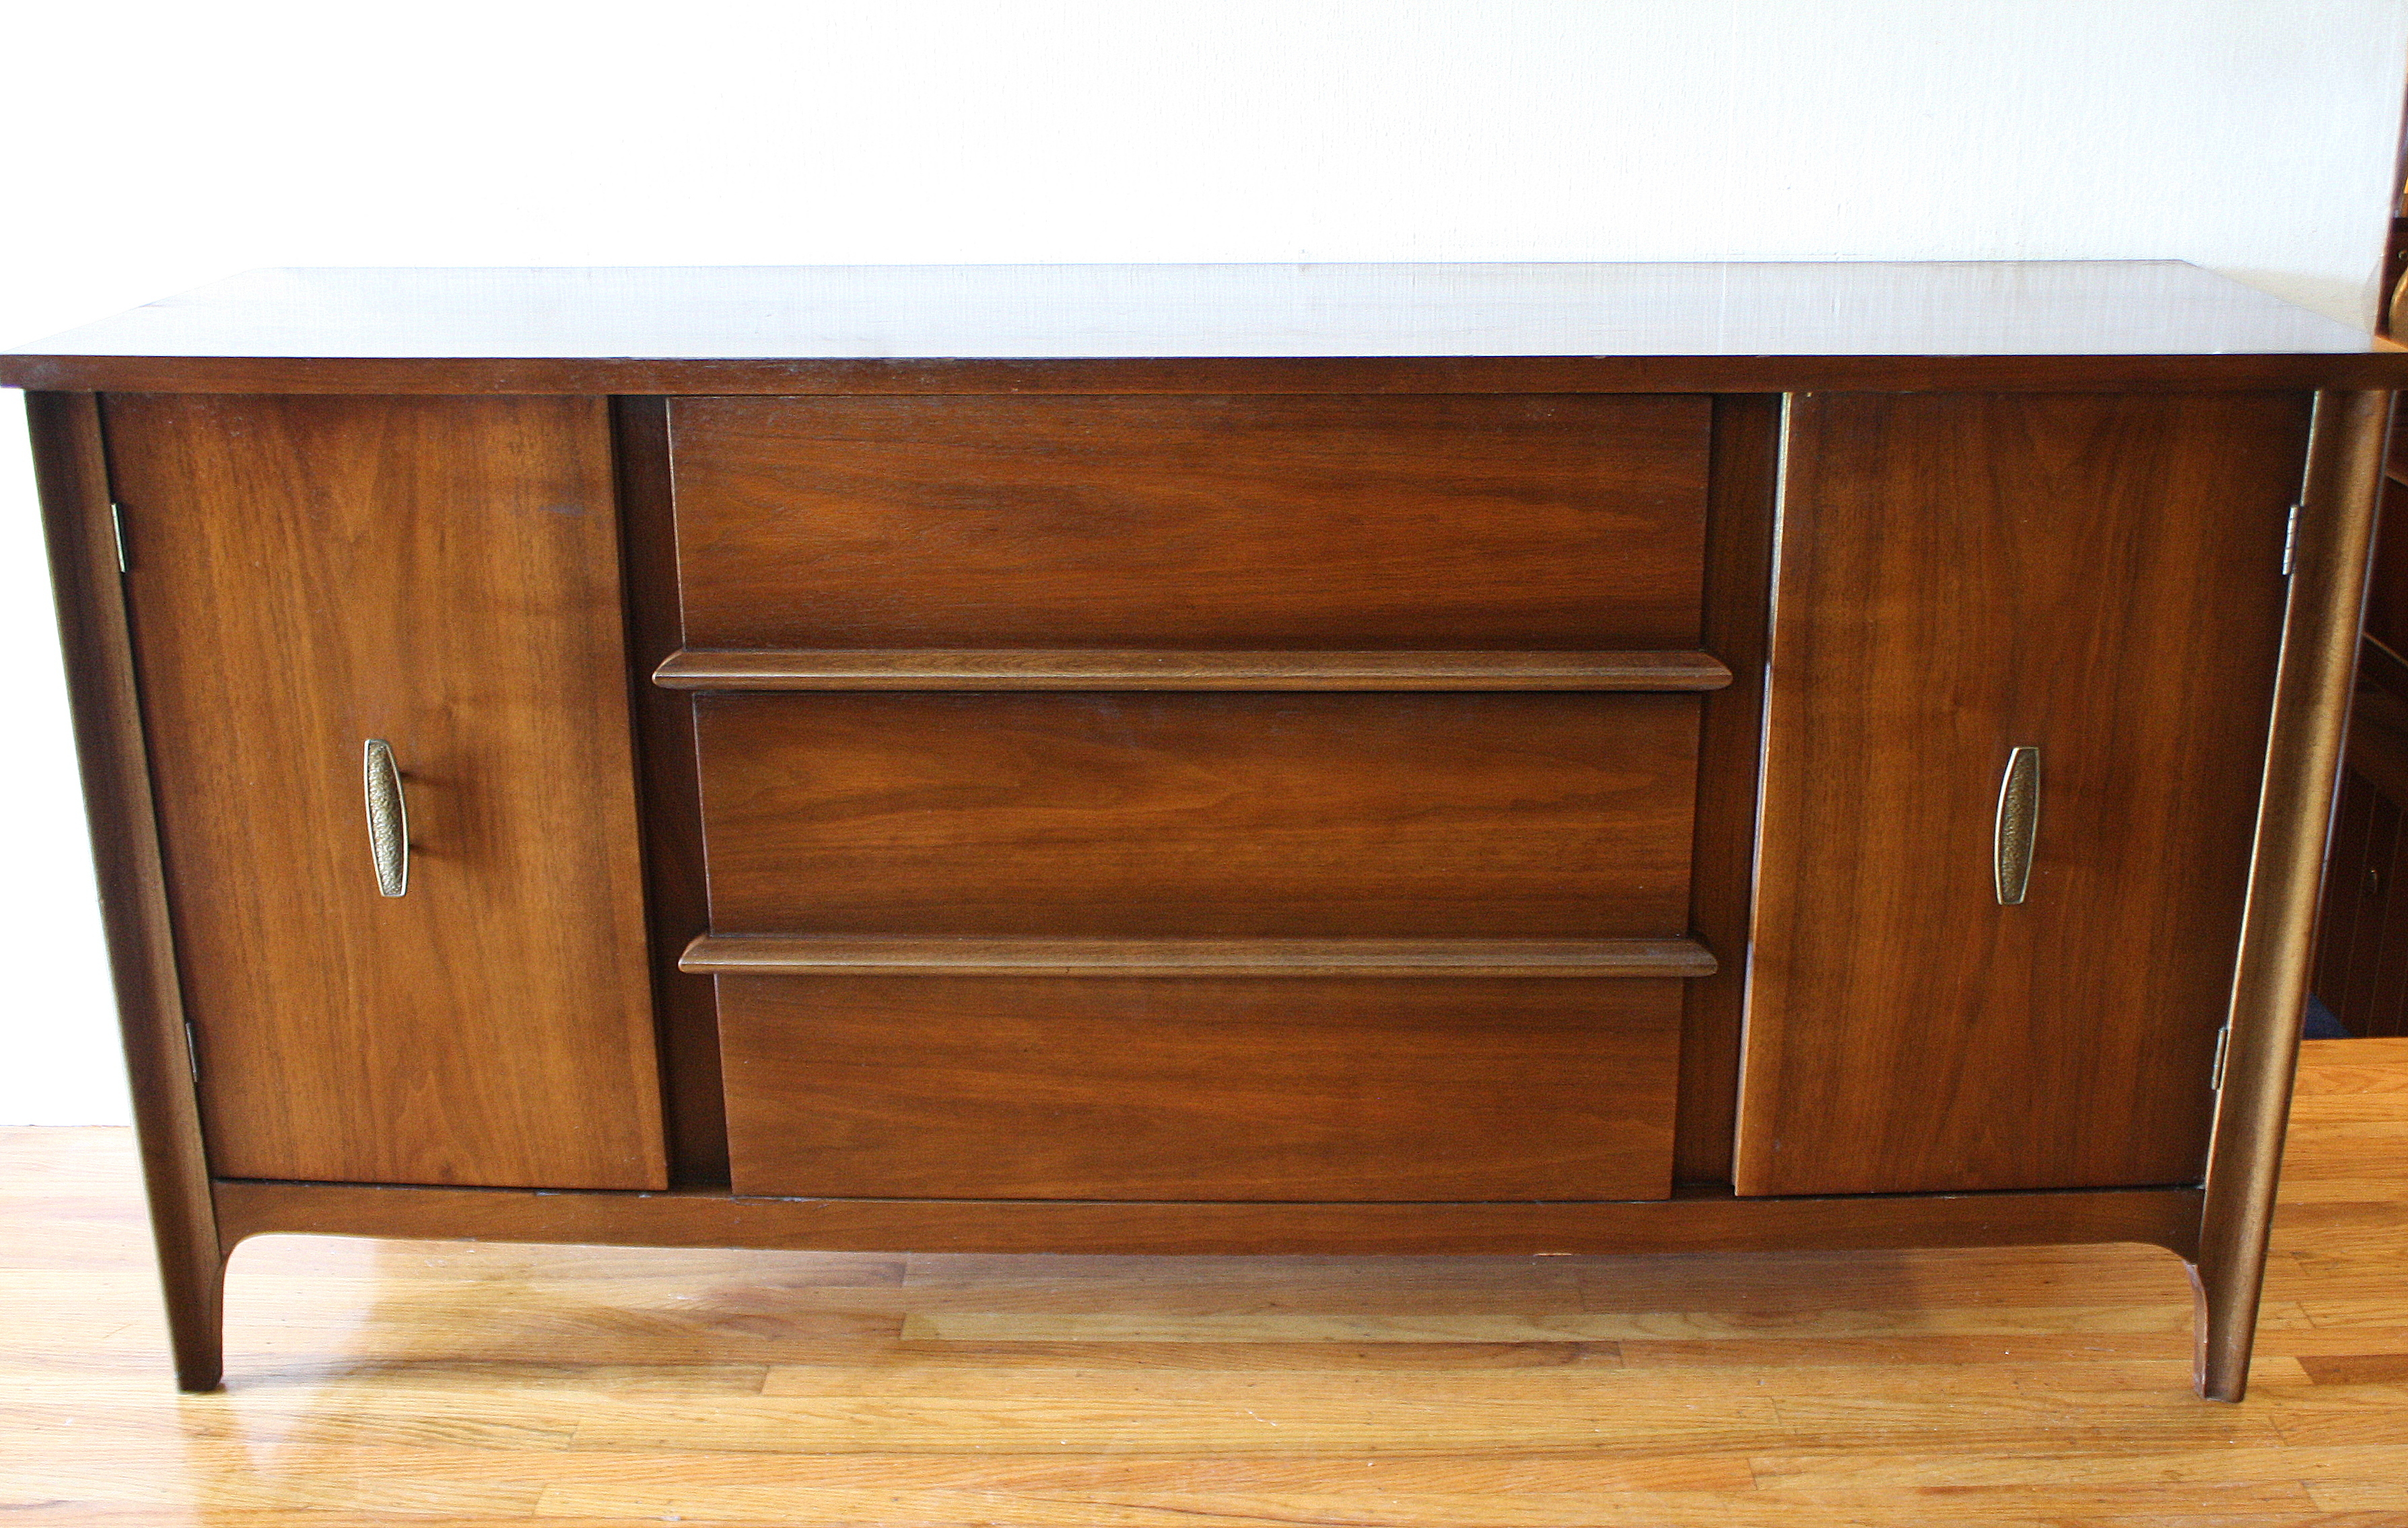 Credenza Def : Mcm credenza with brass handles and streamlined drawers 1 picked